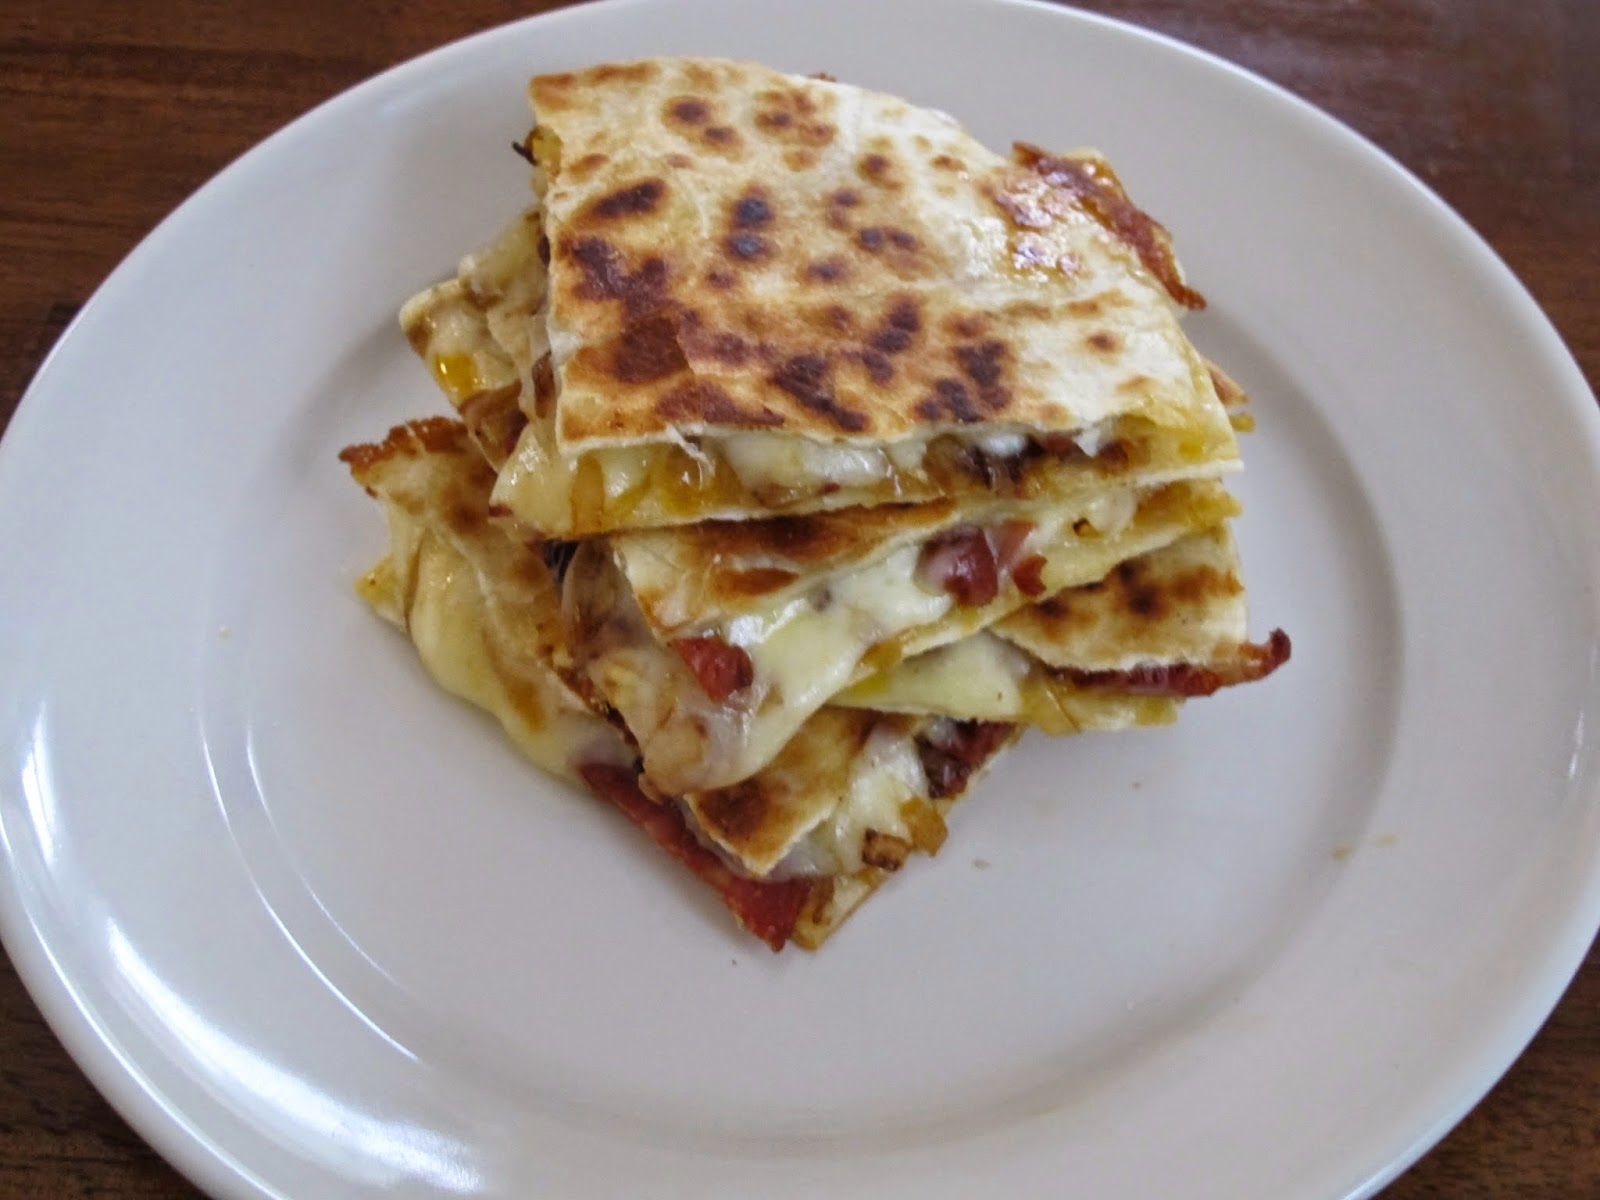 Kitchen Sink Diaries: Chorizo & Caramelized Onion Quesadillas